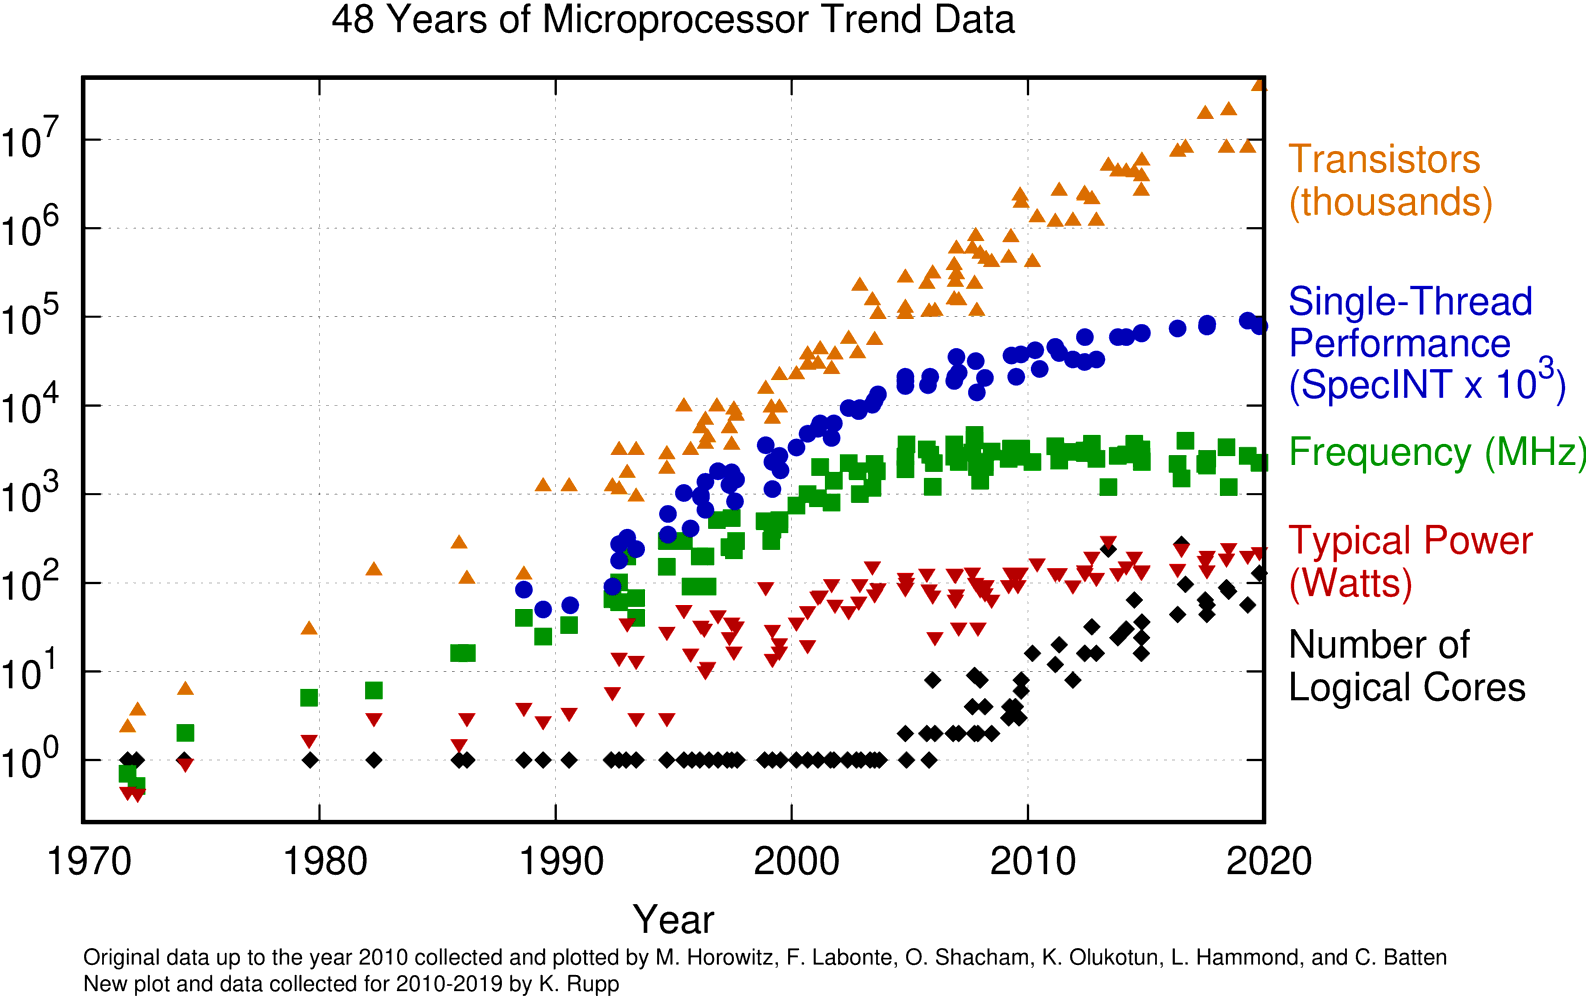 48 Years of Microprocessor Trend Data Chart